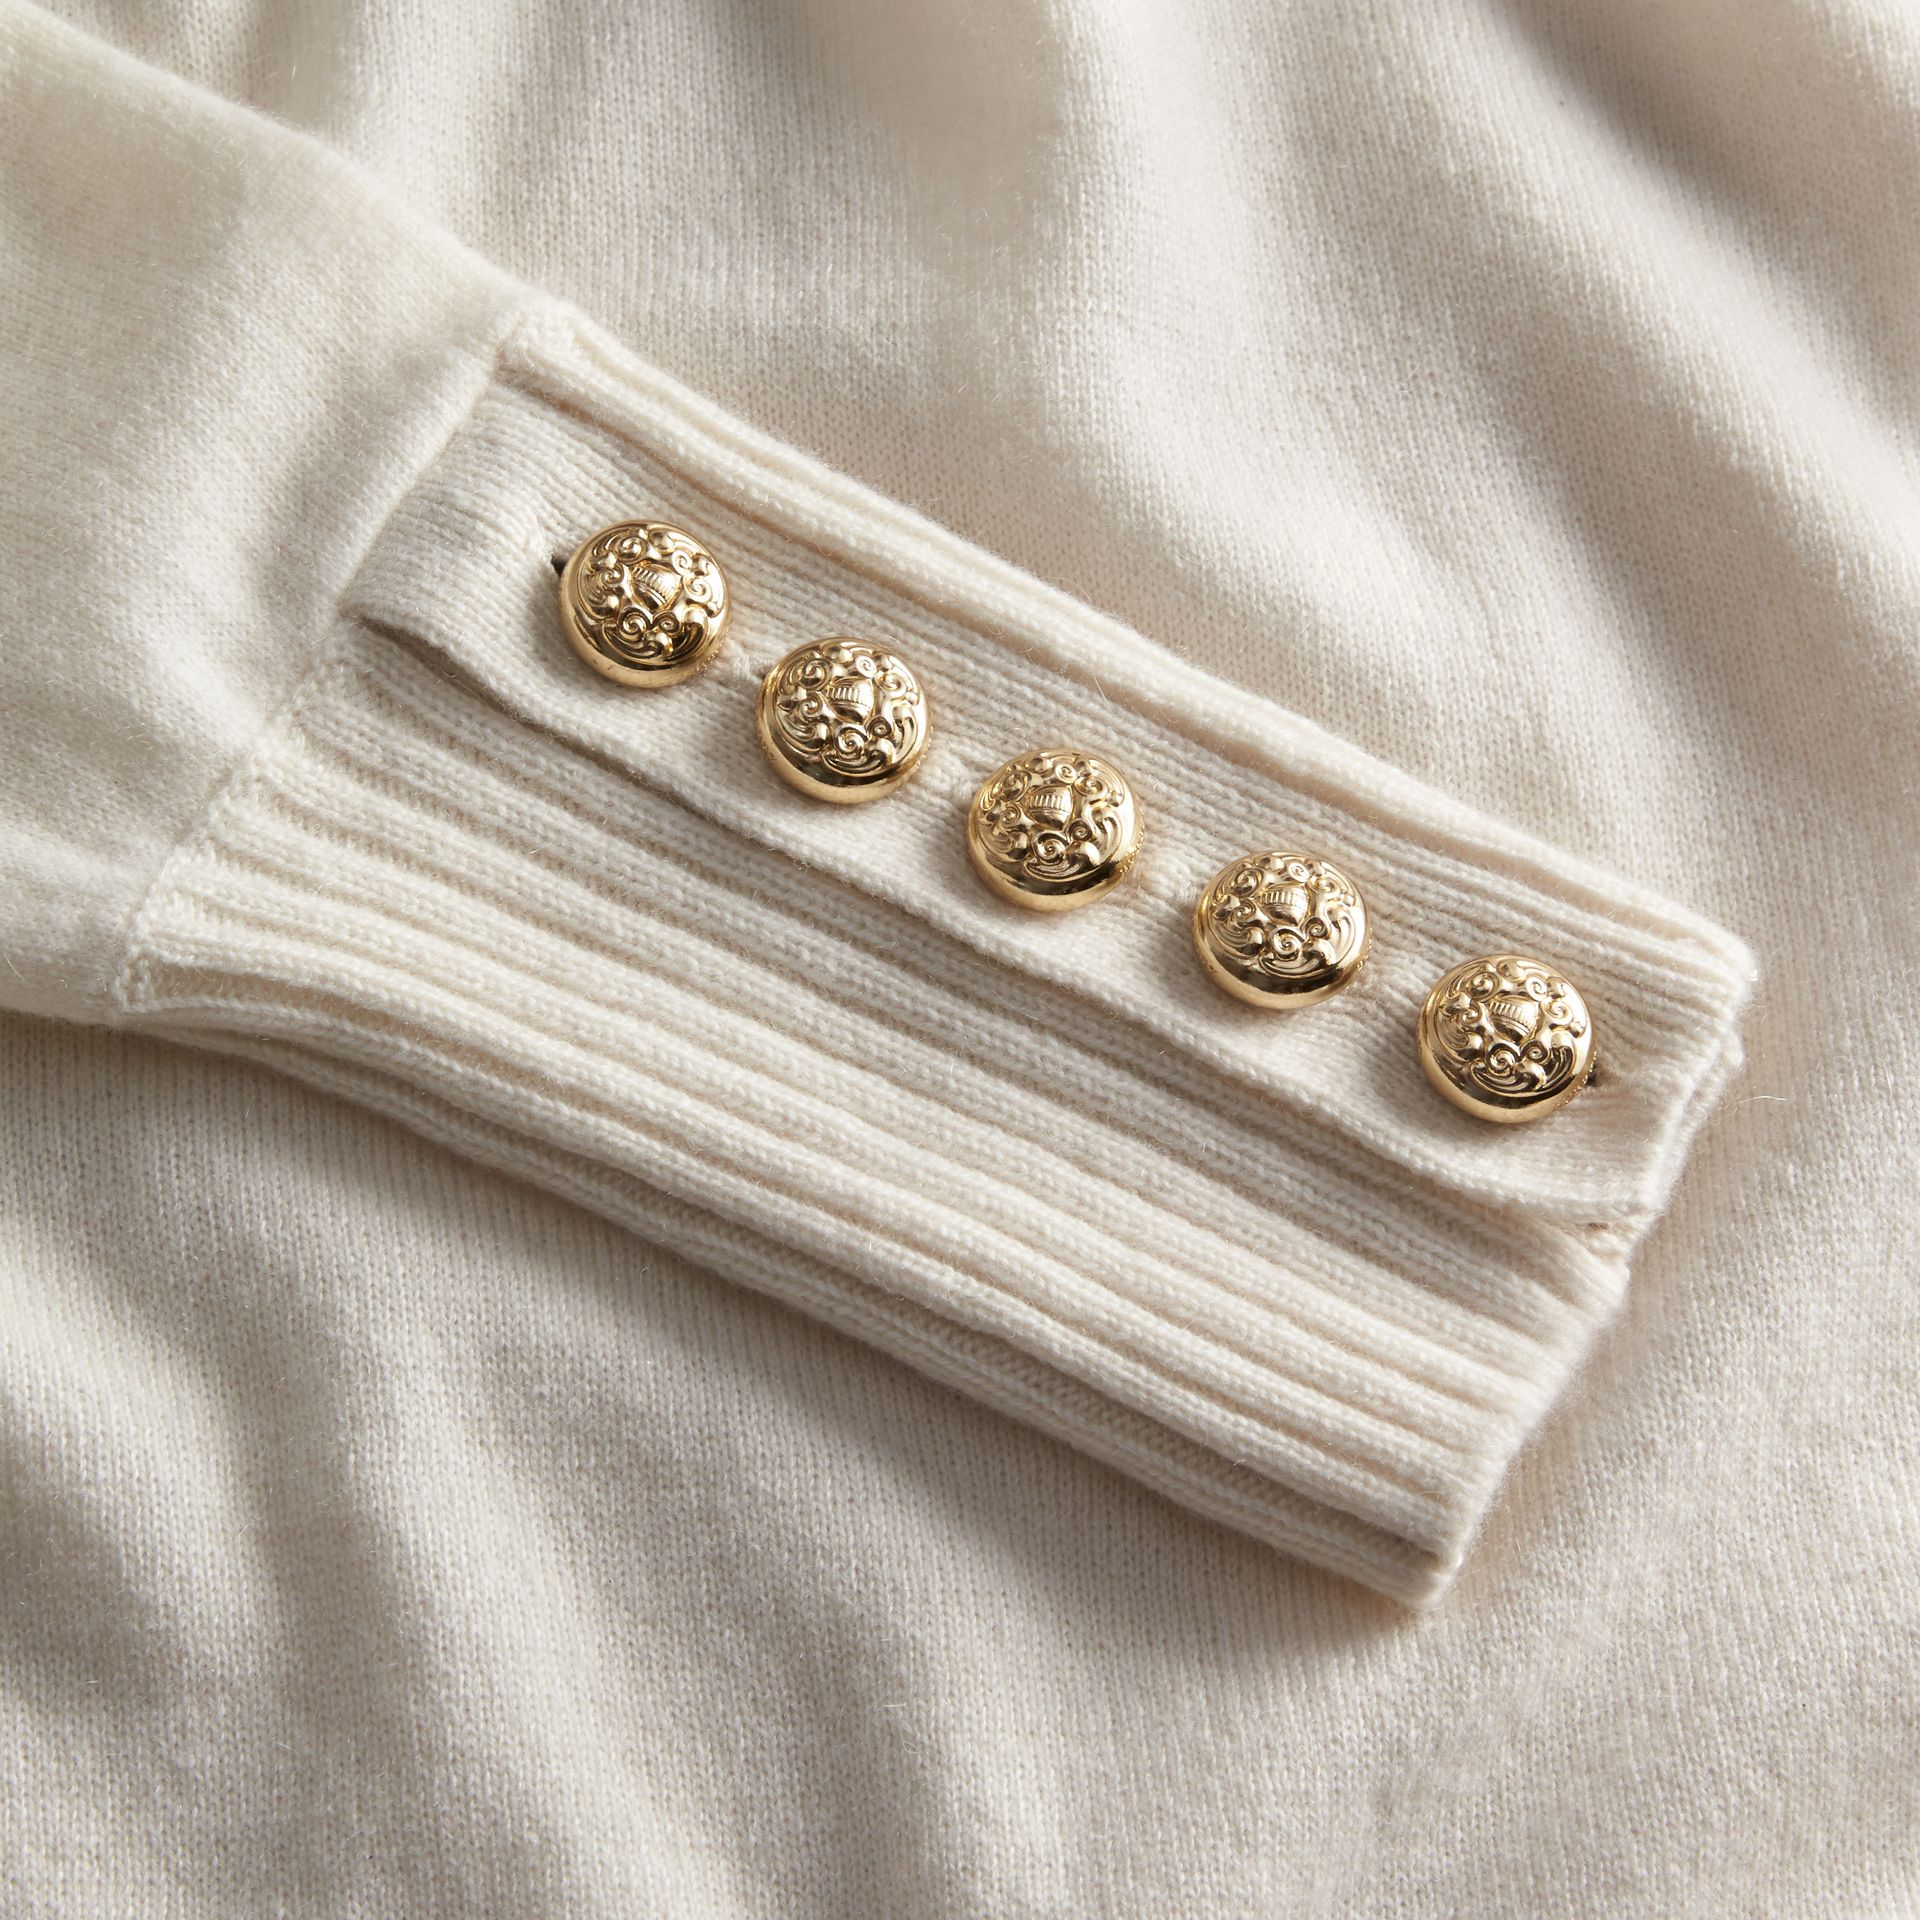 Natural white Cashmere Sweater with Crested Buttons Natural White - gallery image 2